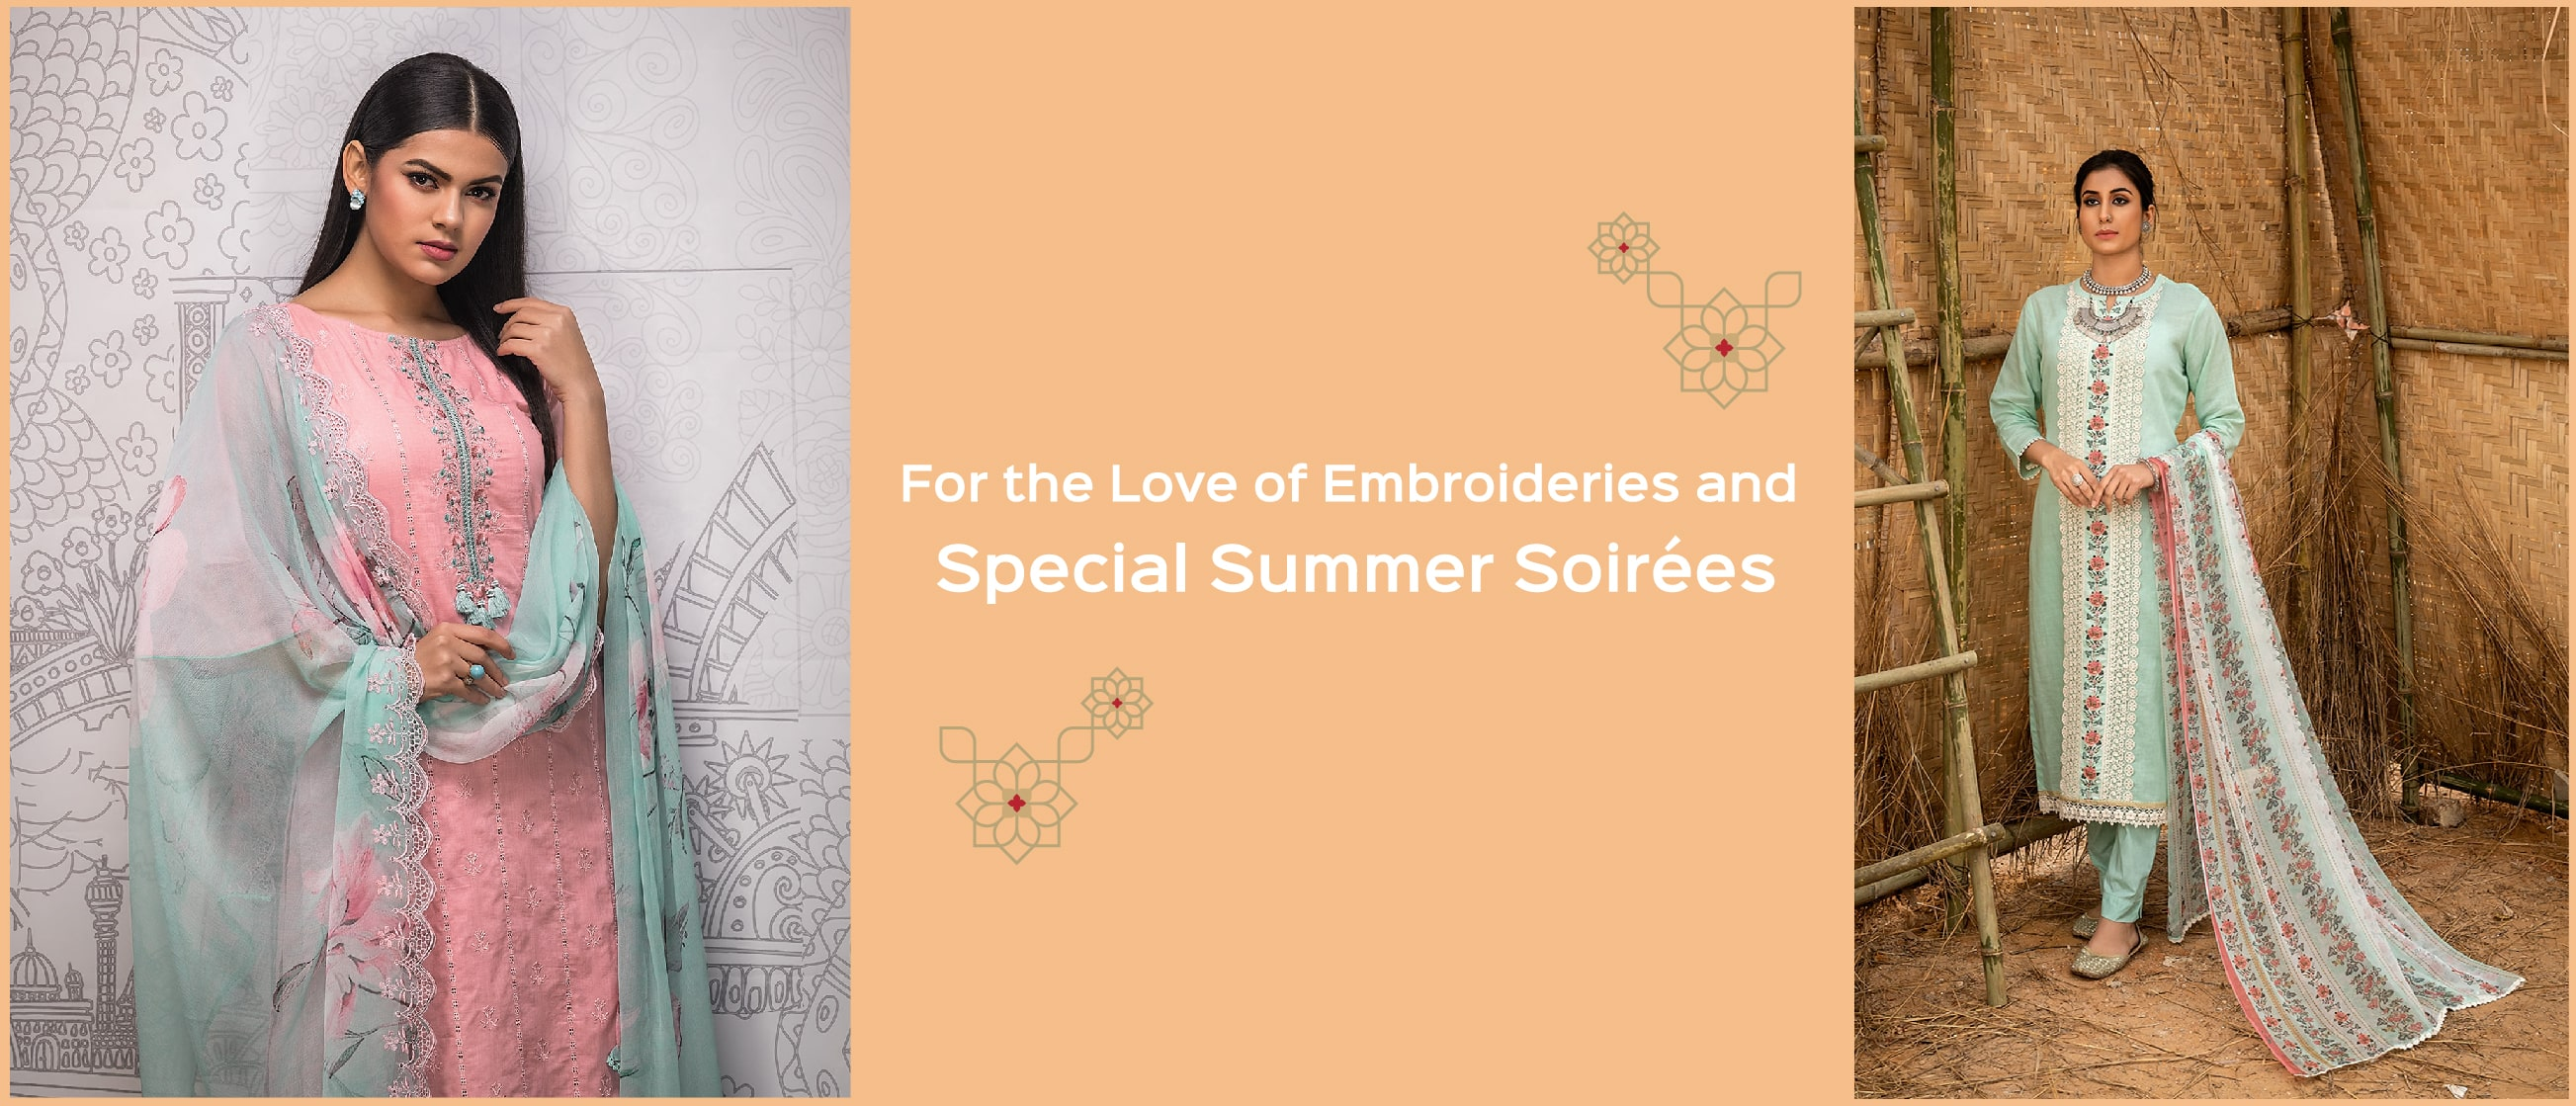 For the Love of Embroideries and Special Summer Soirées